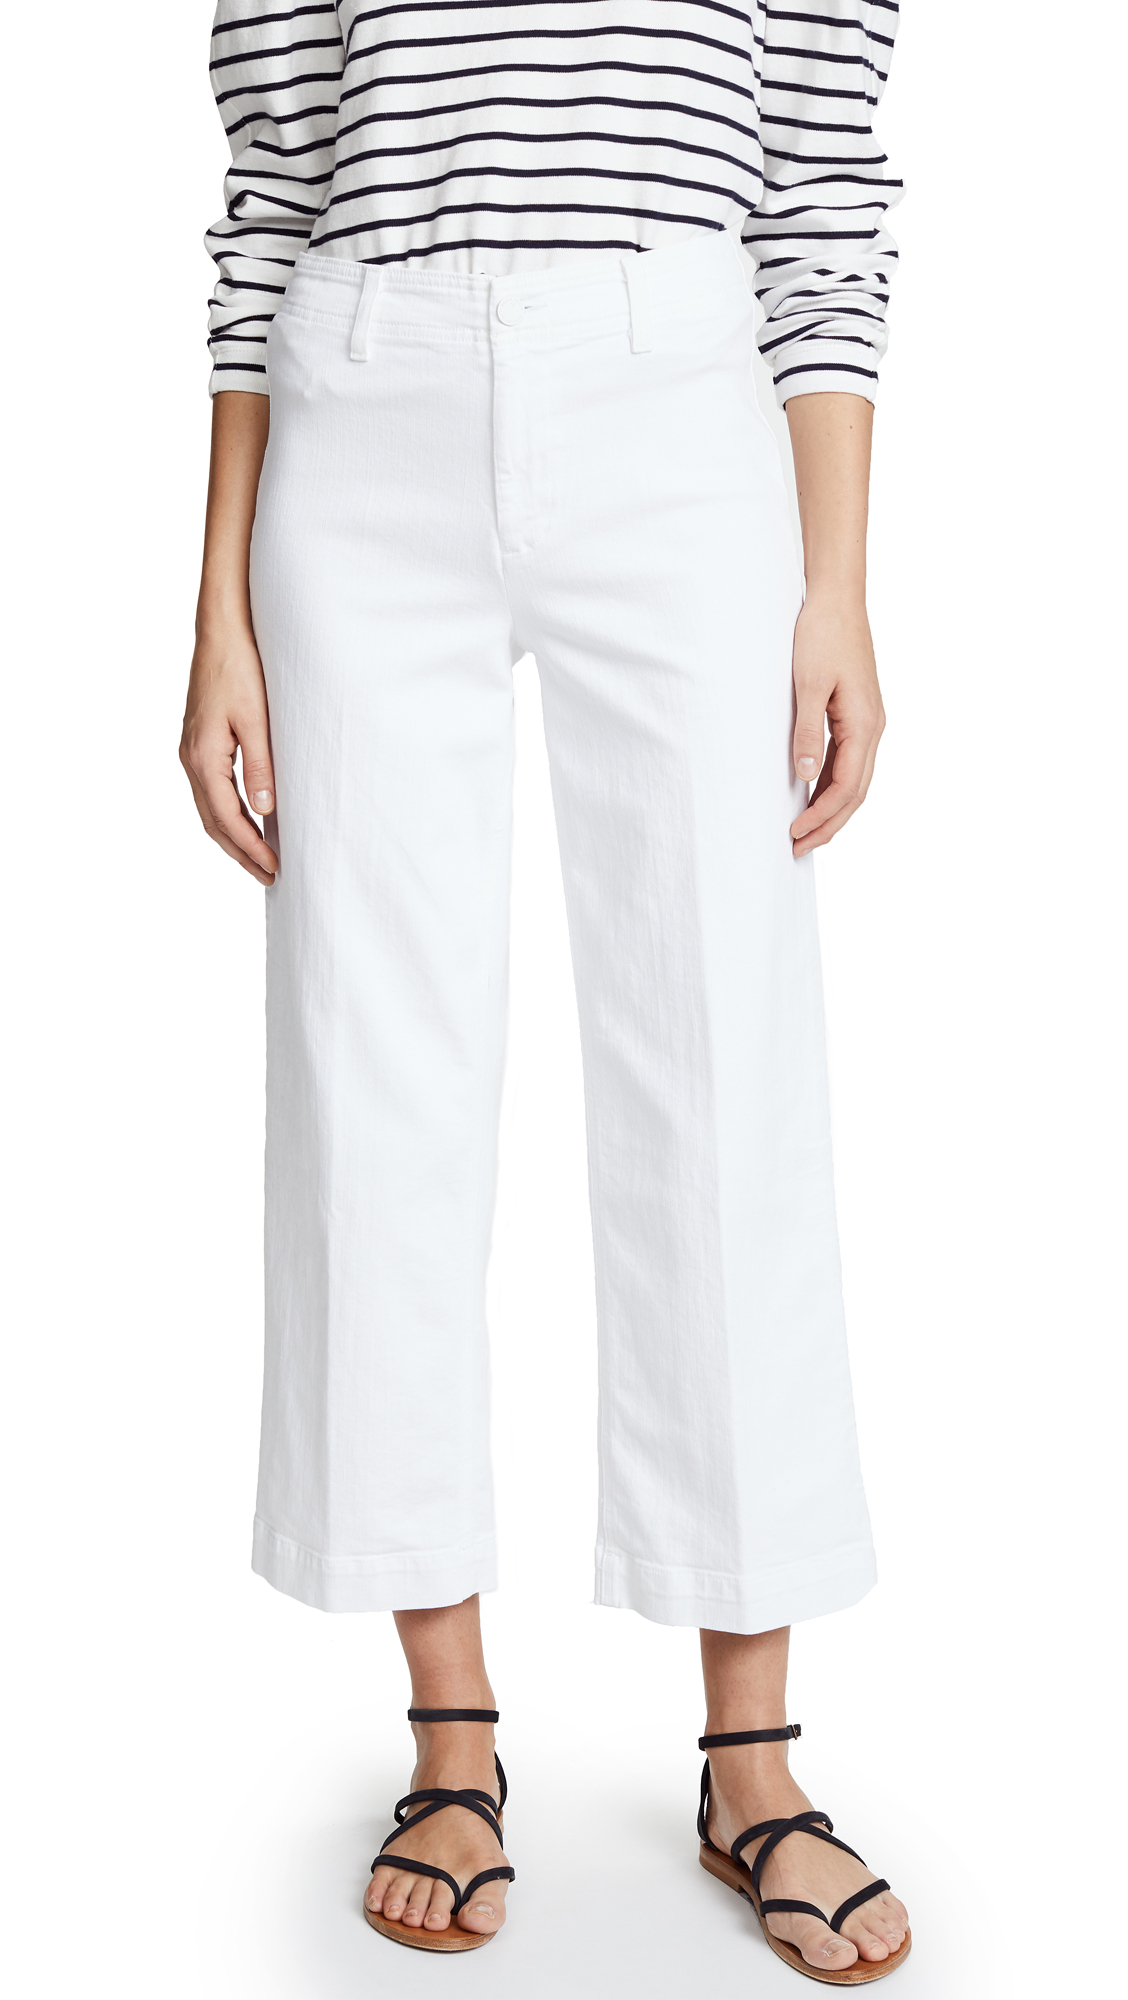 CLEAN-FRONT NELLIE JEANS IN CRISP WHITE